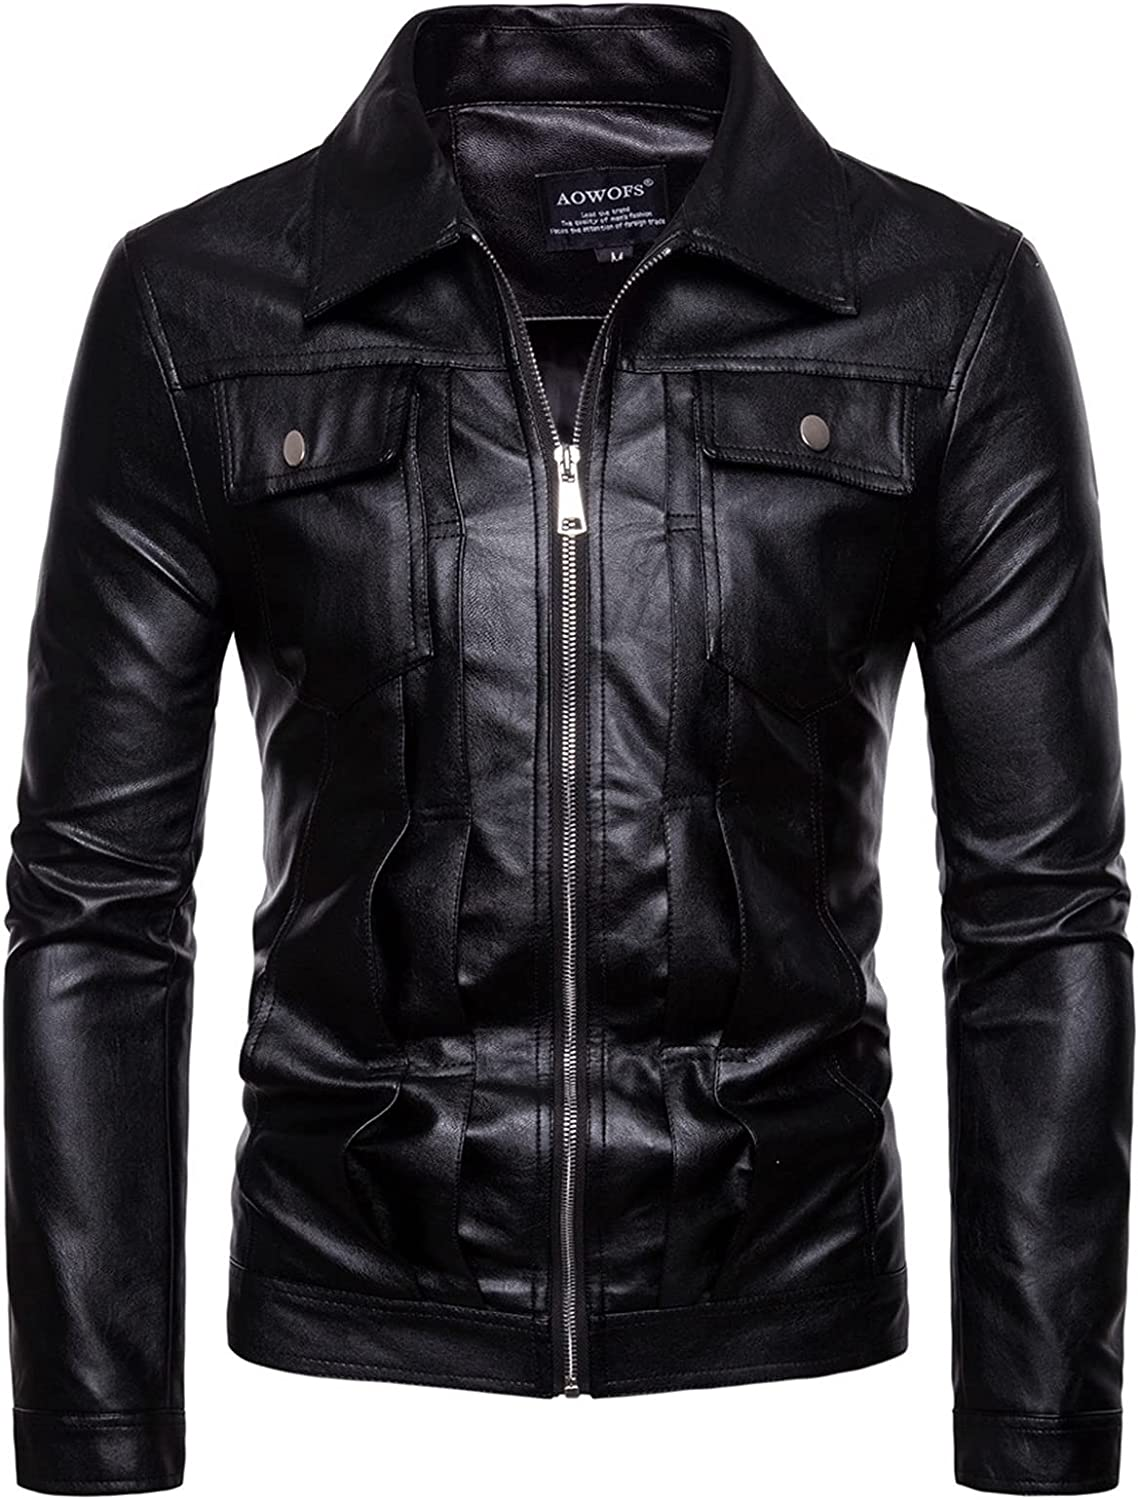 YUIJ Men's Black Leather Jackets,Pocket Decoration Washing Machine PU Leather Jacket,for Outdoor Cycling by Teenagers